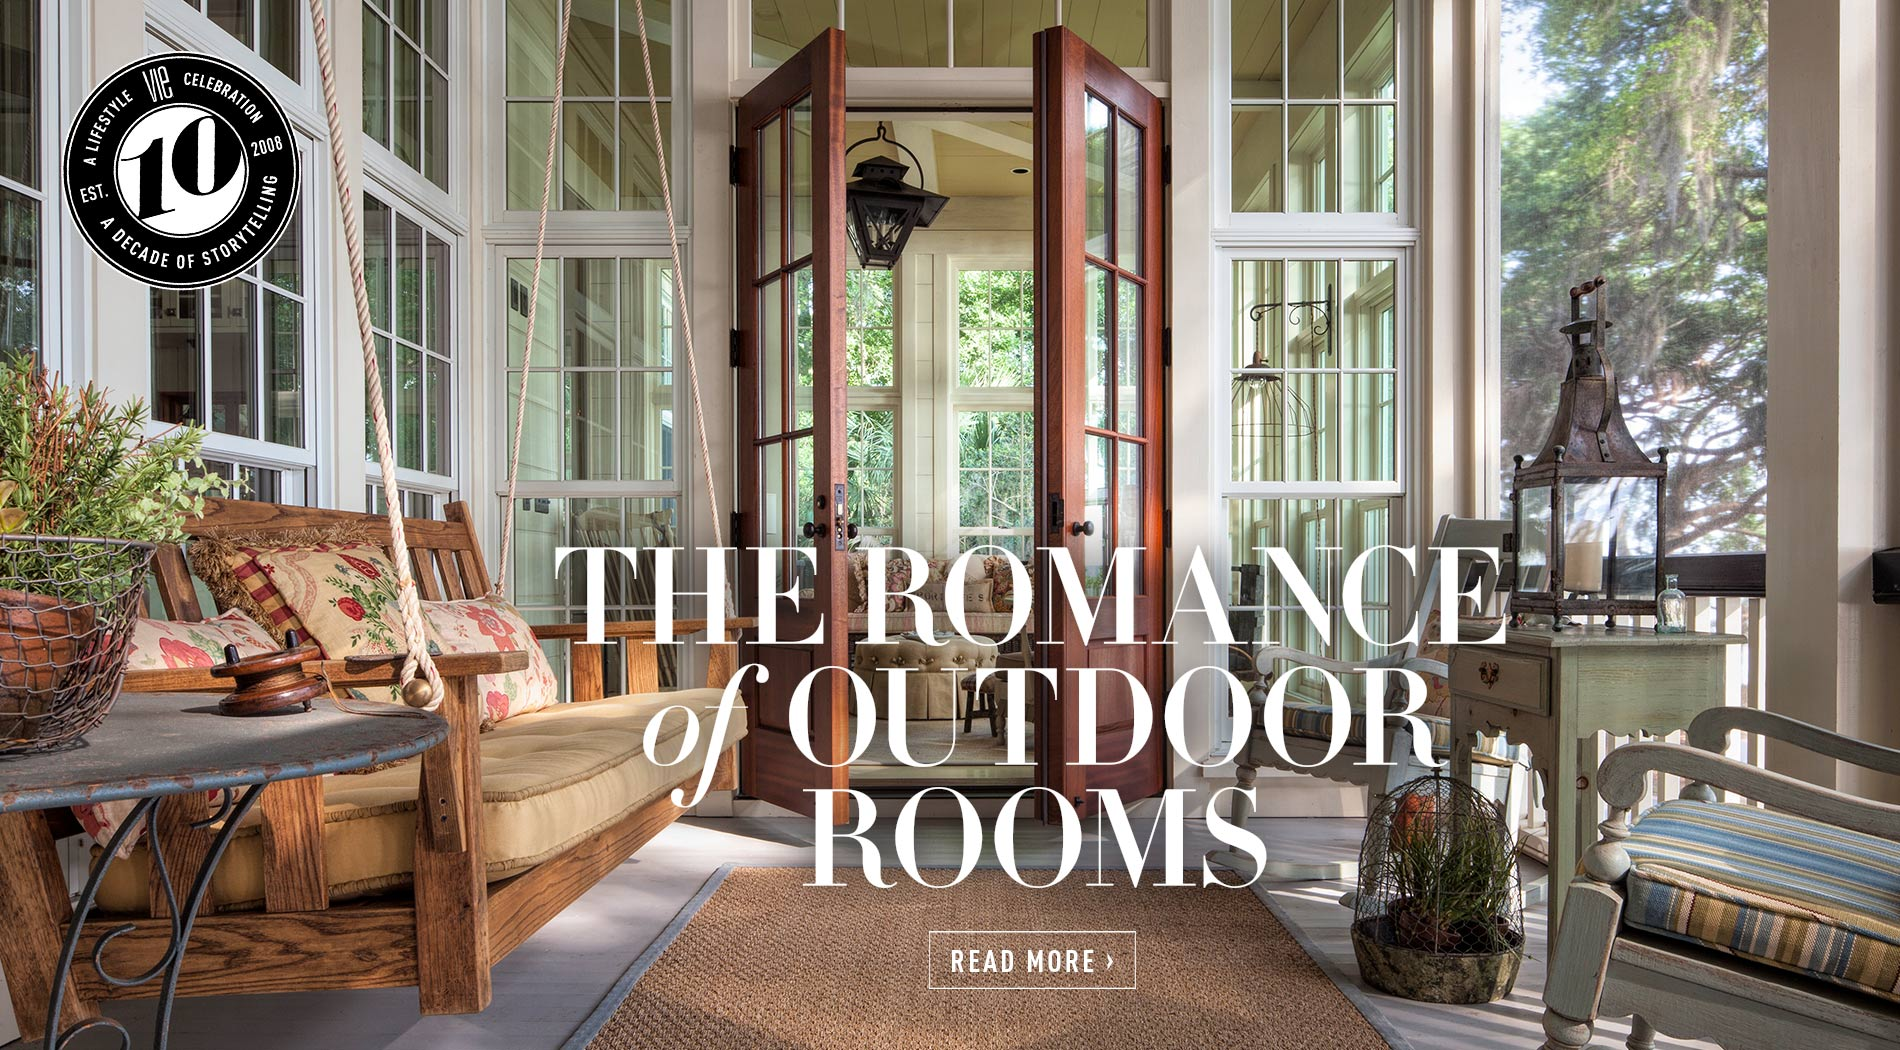 VIE Magazine - July 2018 Architecture & Design Issue - The Romance of Outdoor Rooms